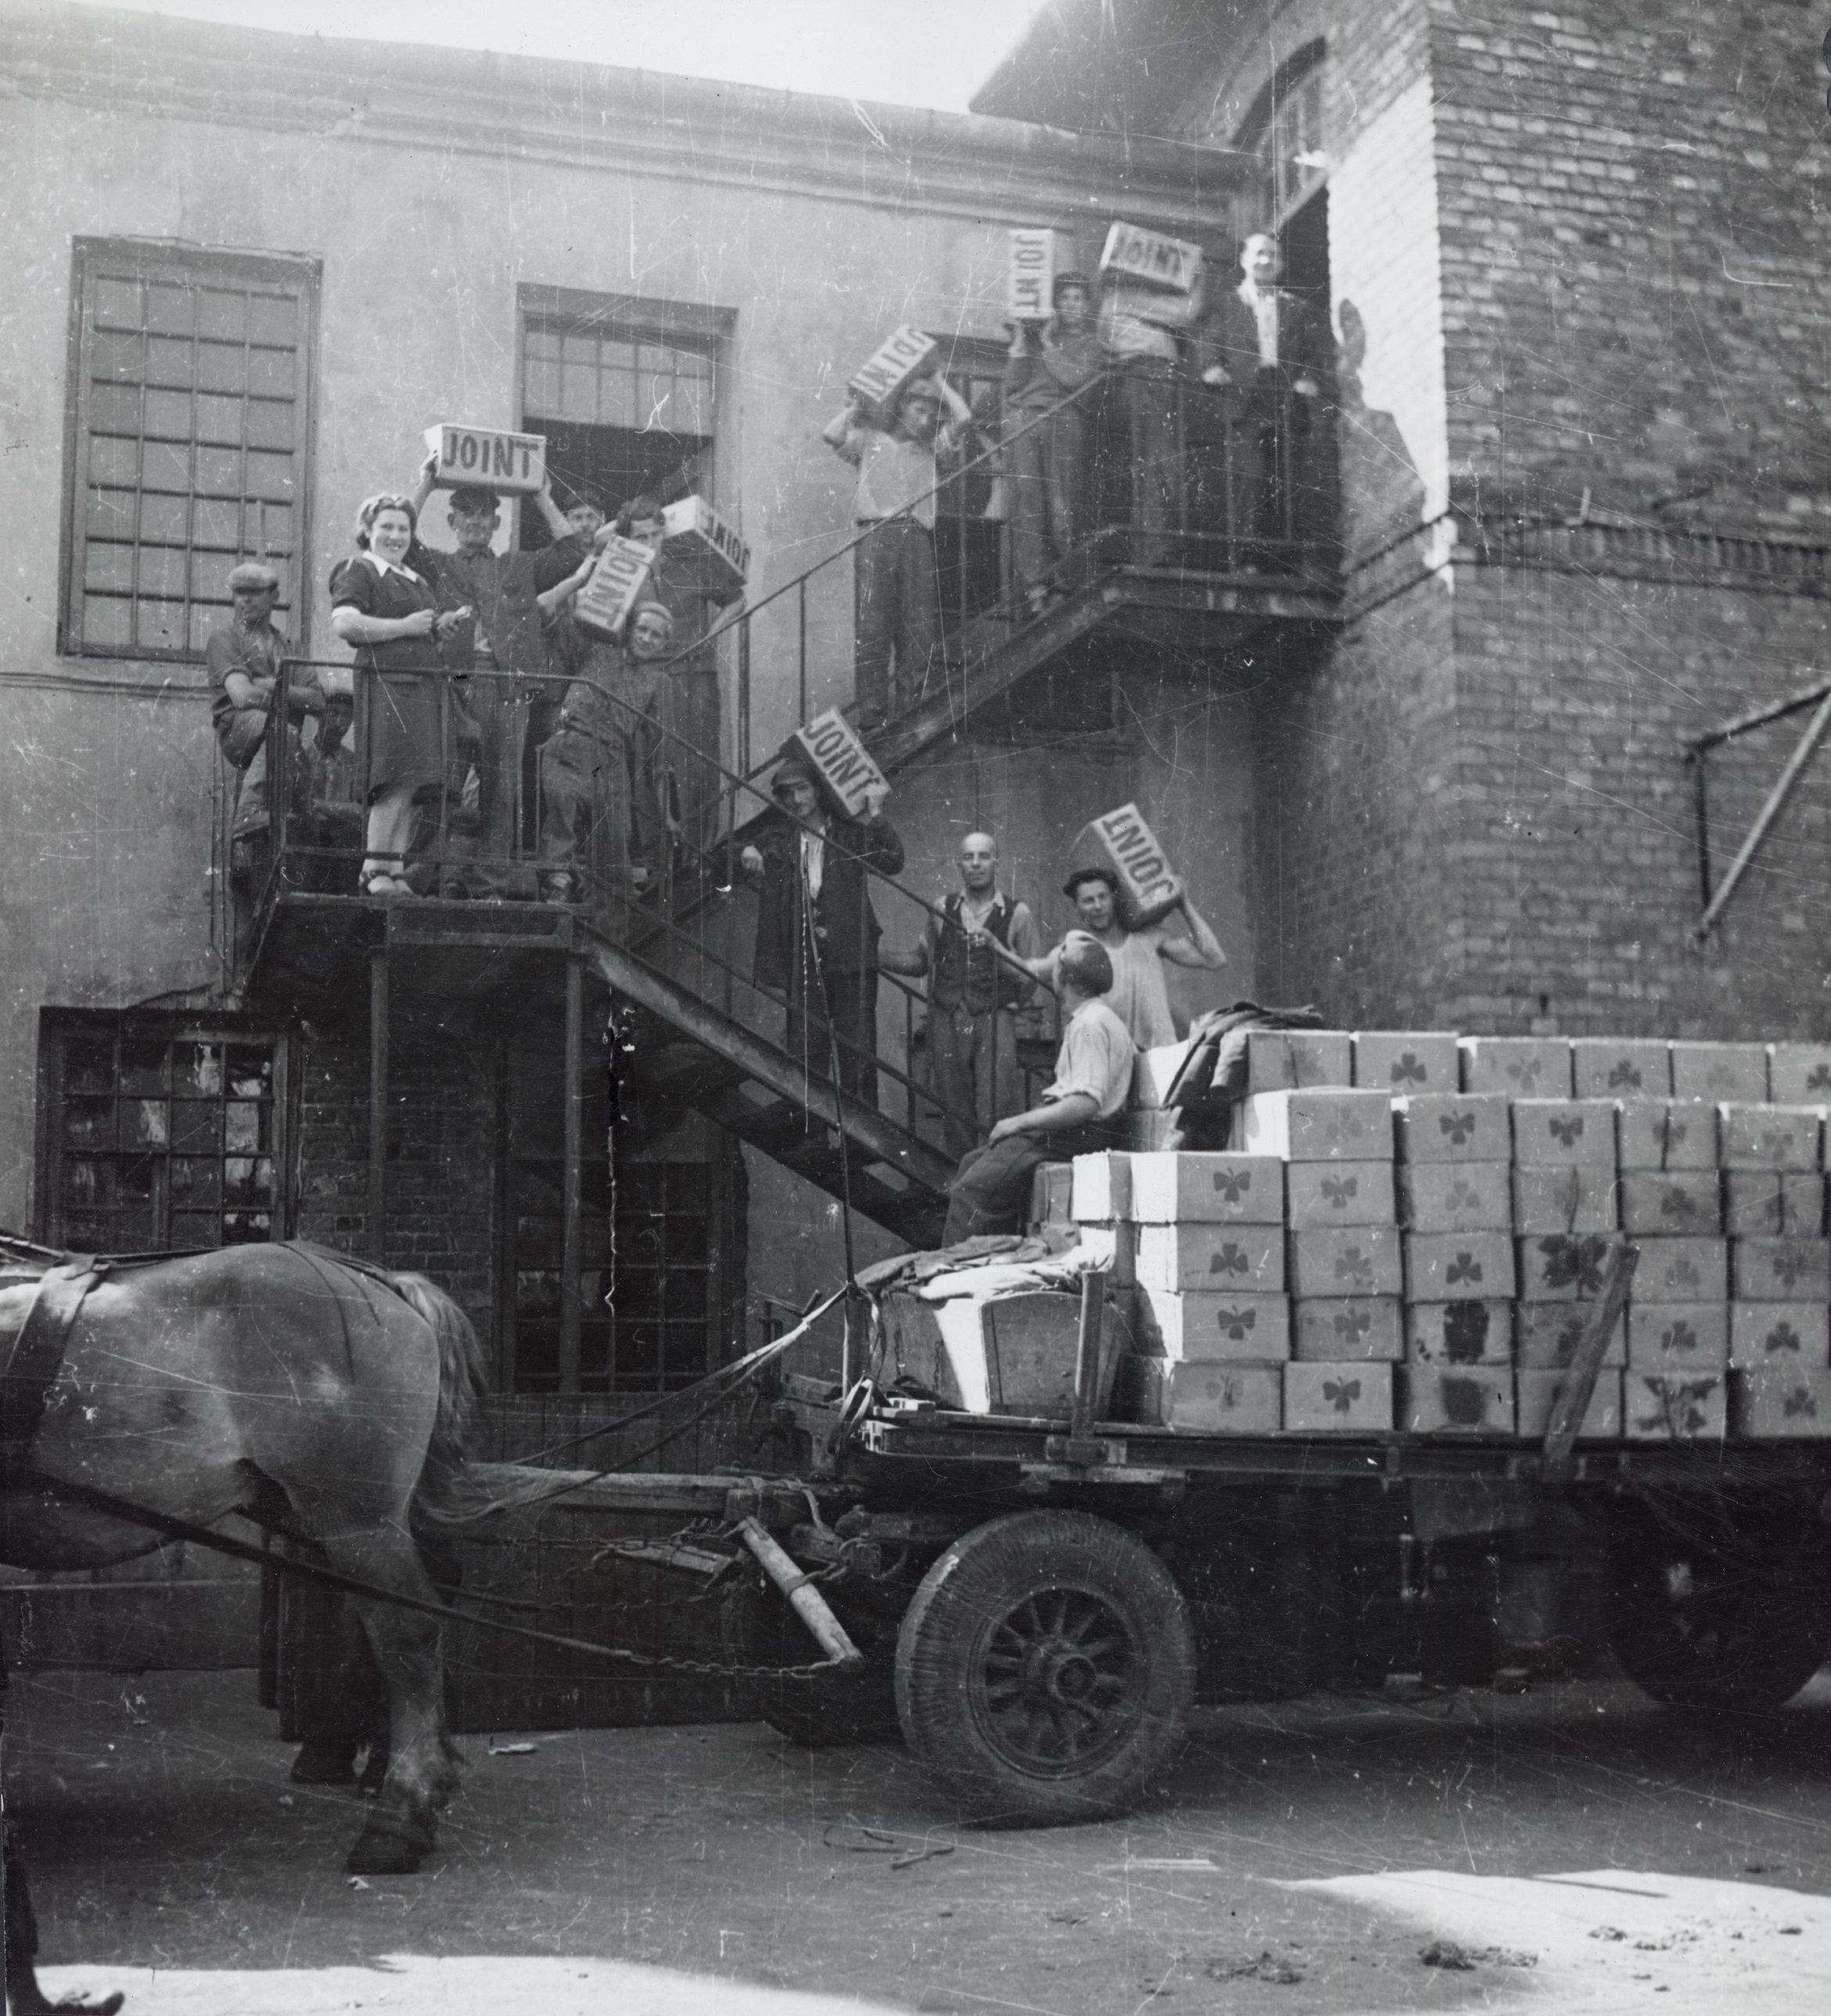 """Transporting of supplies labeled """"Joint"""" to a warehouse, Warsaw, c. 1946-47."""